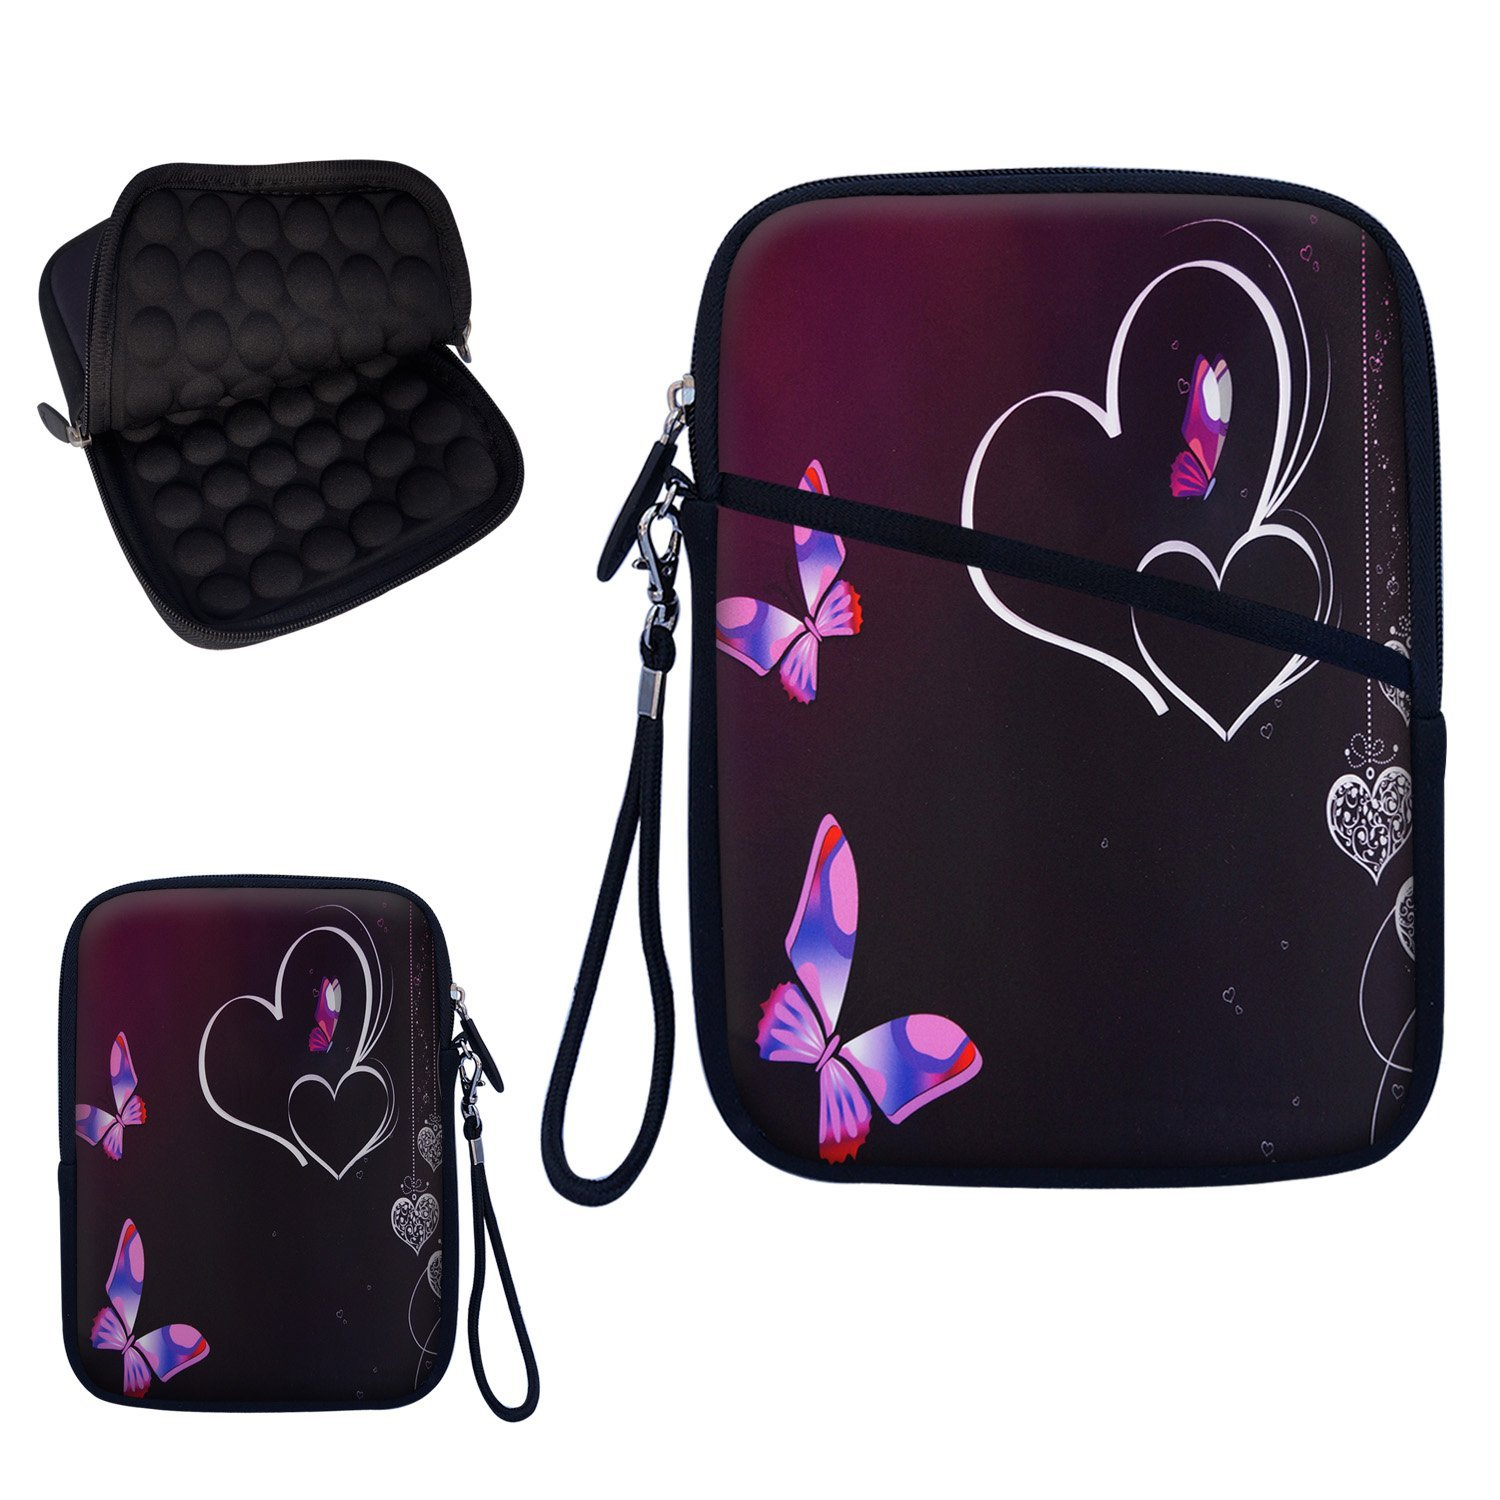 """Neoprene Super Padded Bubble Sleeve Case Cover with Extra Pocket for Accessories & Removable Carrying Handle Fits Apple iPad Mini / Amazon Kindle Fire HD / Google Nexus 7 / Samsung Galaxy / Asus / Acer / Archos and Similar Size 7"""" Tablet - Heart Butterfly Design"""